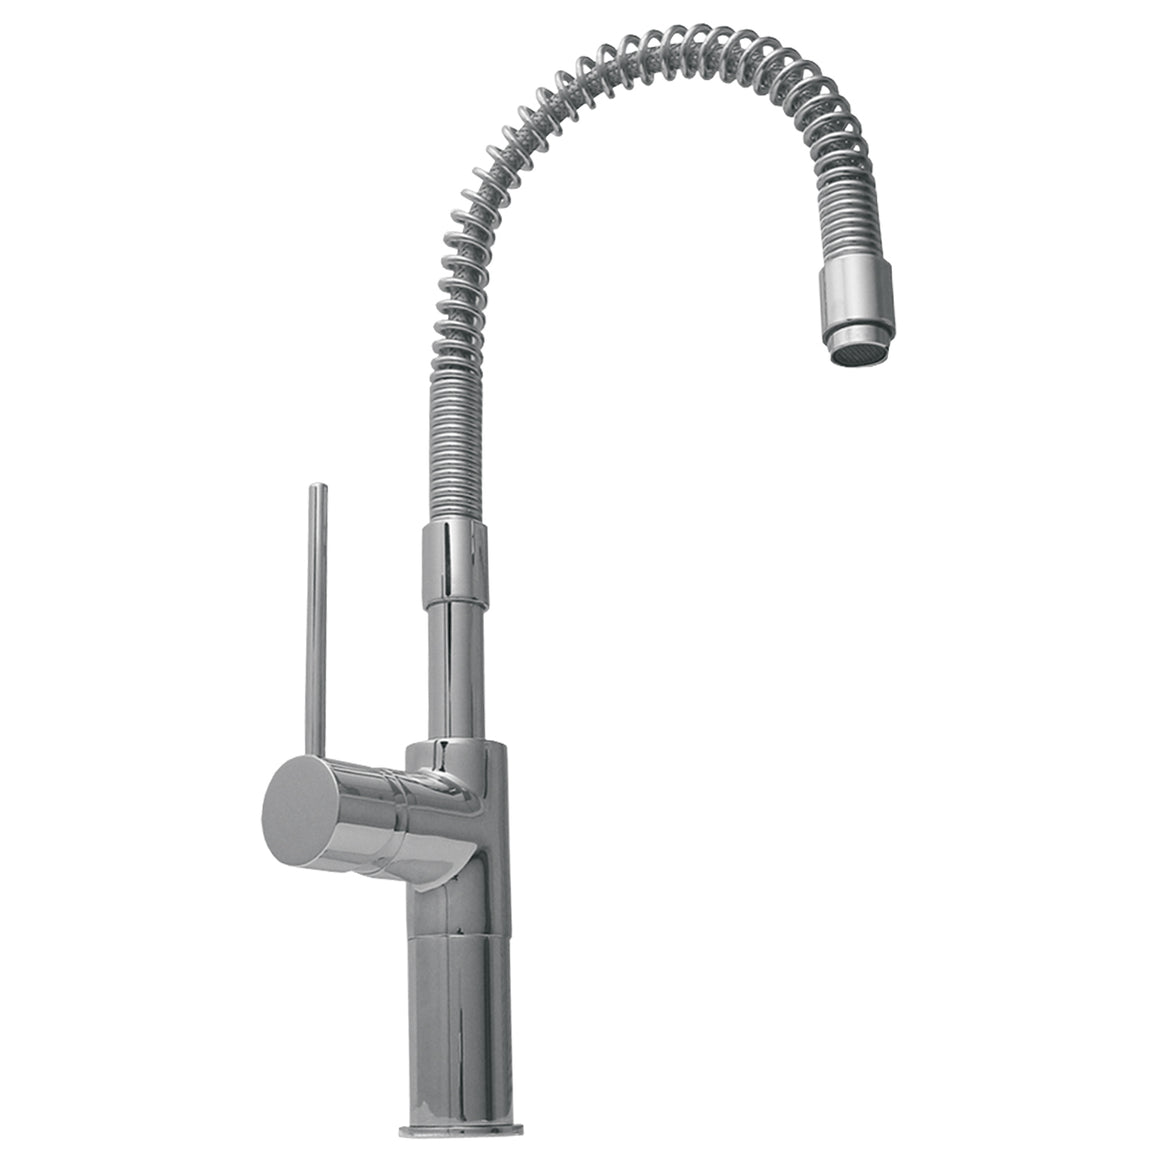 Metrohaus commercial single hole faucet with flexible spout and lever handle